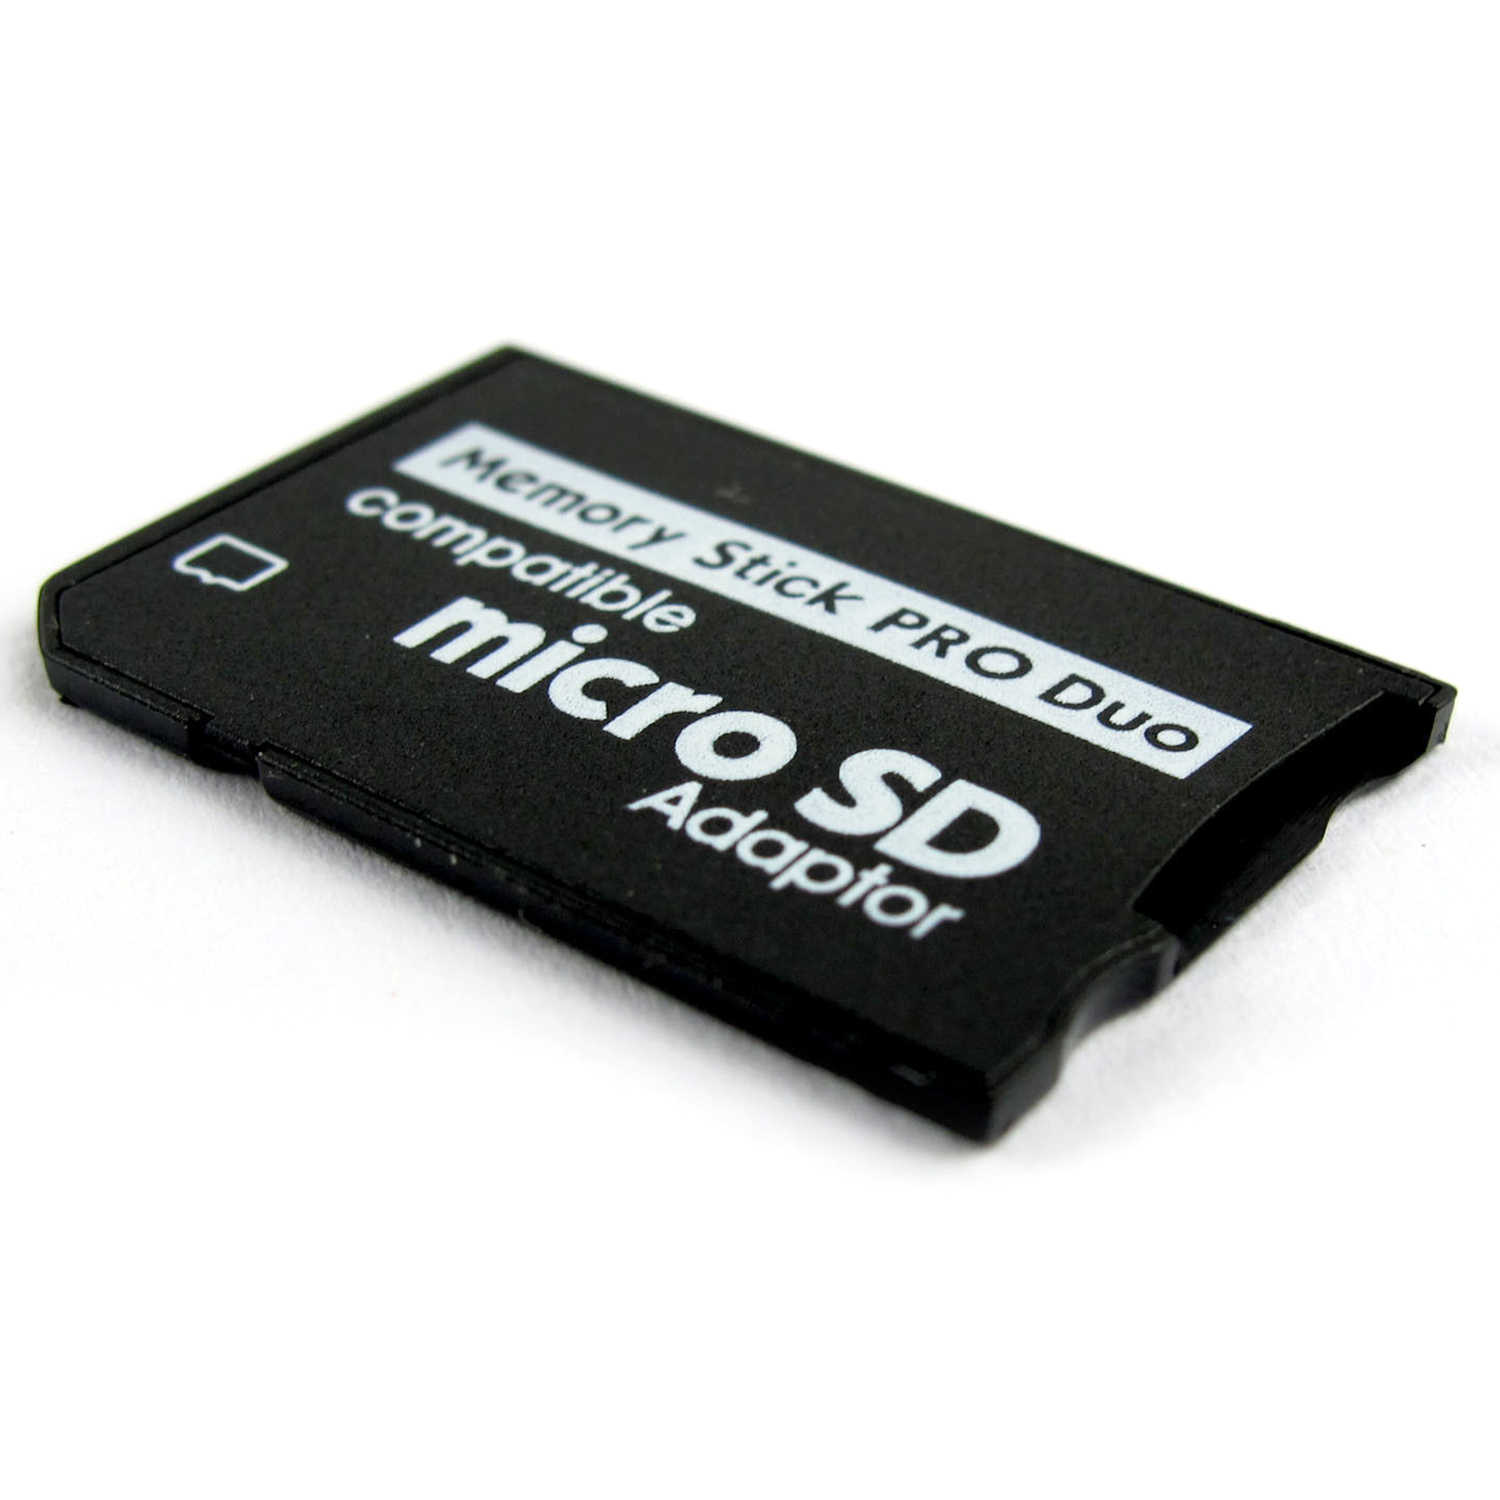 Memory Stick Pro Duo Mini MicroSD TF adattatore MS SD SDHC Card Reader per Sony & PSP della Serie